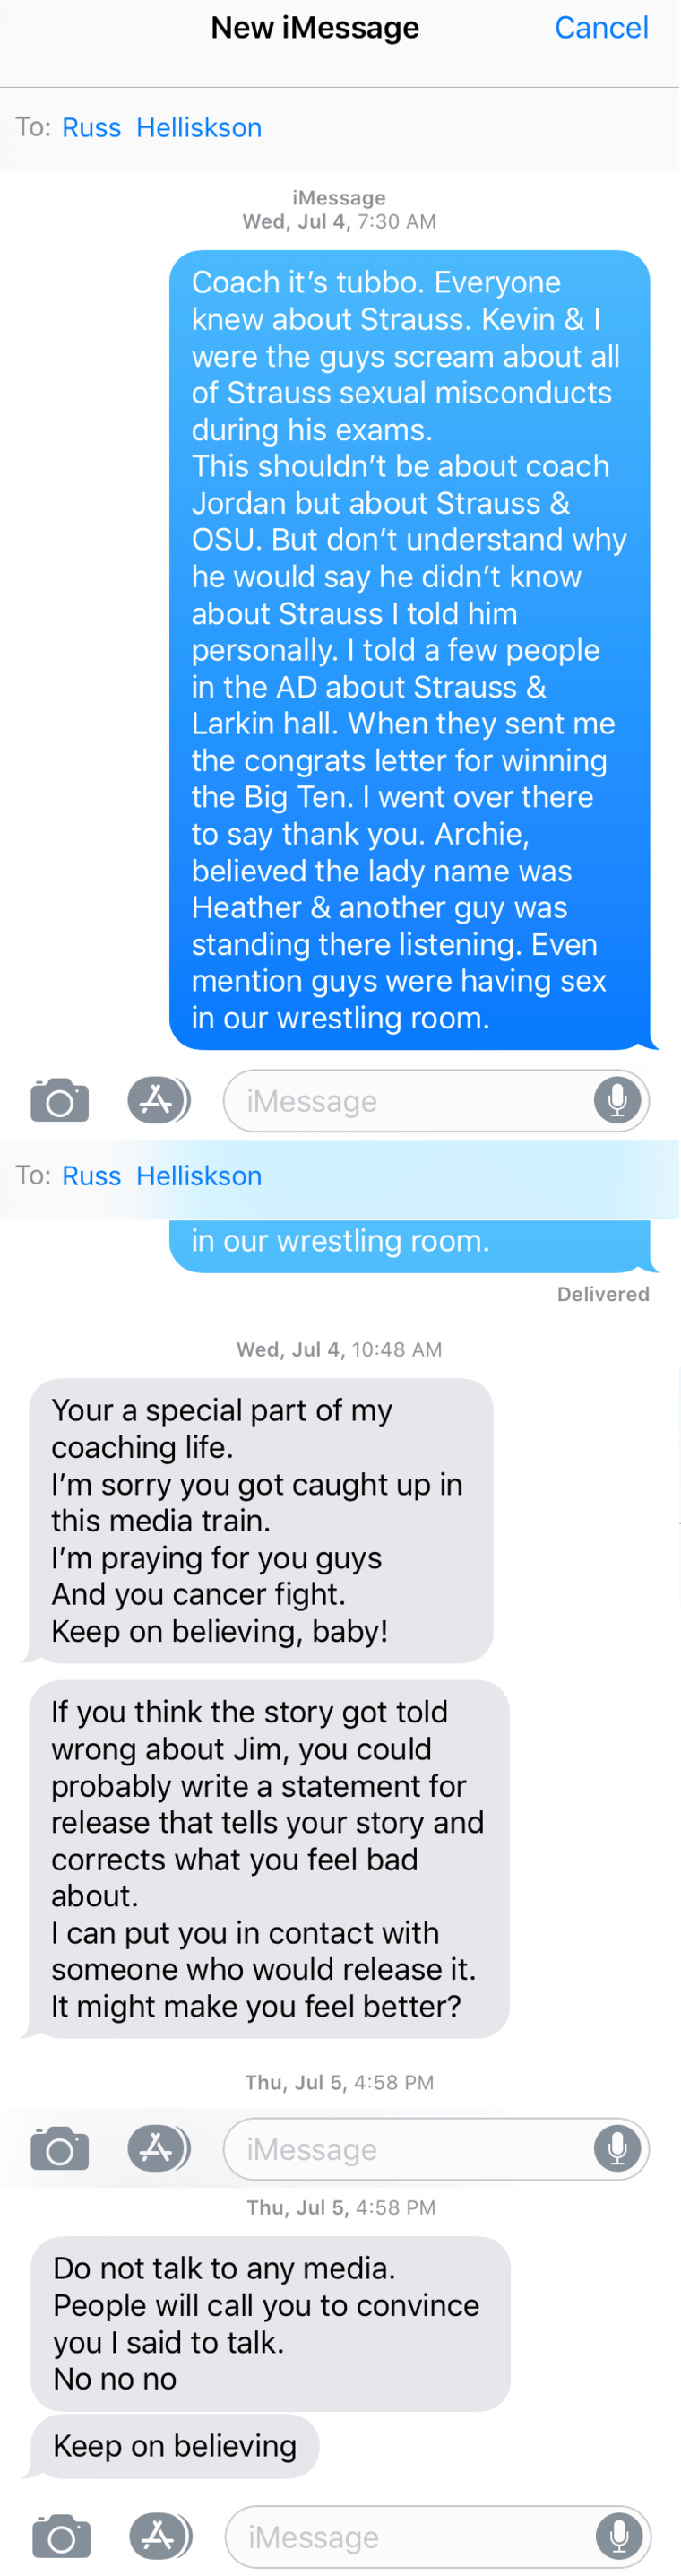 Screen grabs of text messages provided by Dunyasha Yetts.